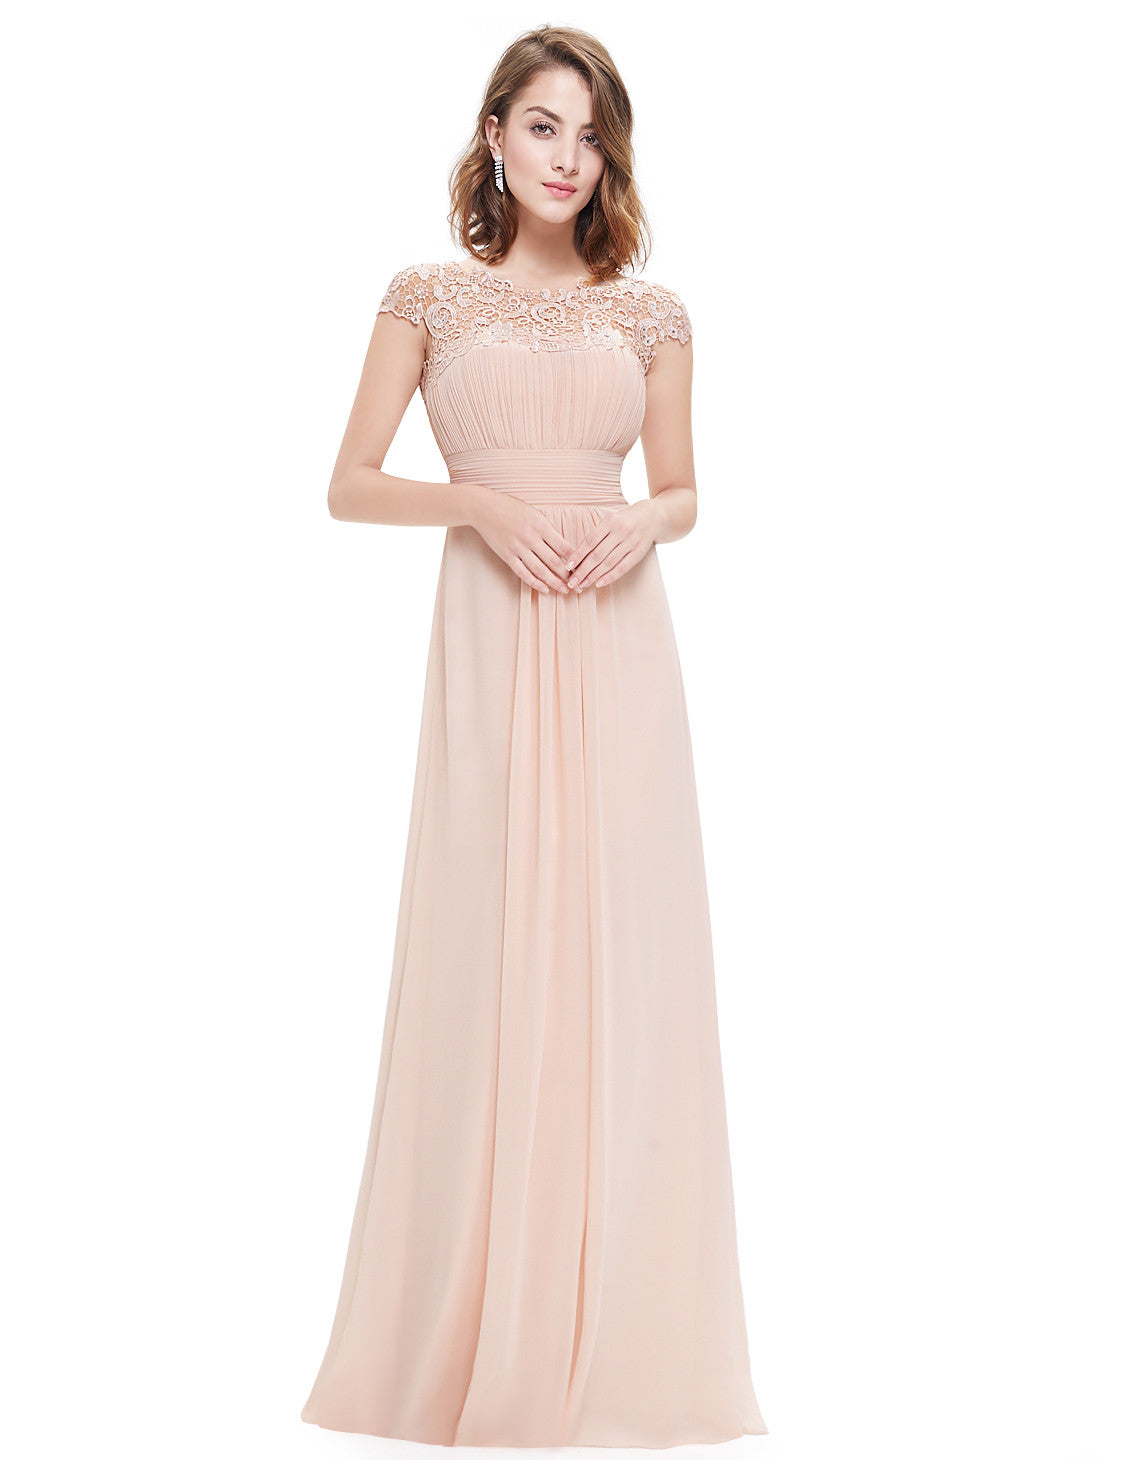 Obeige Cap Sleeve Lace Neckline Ruched Bust Evening Gown